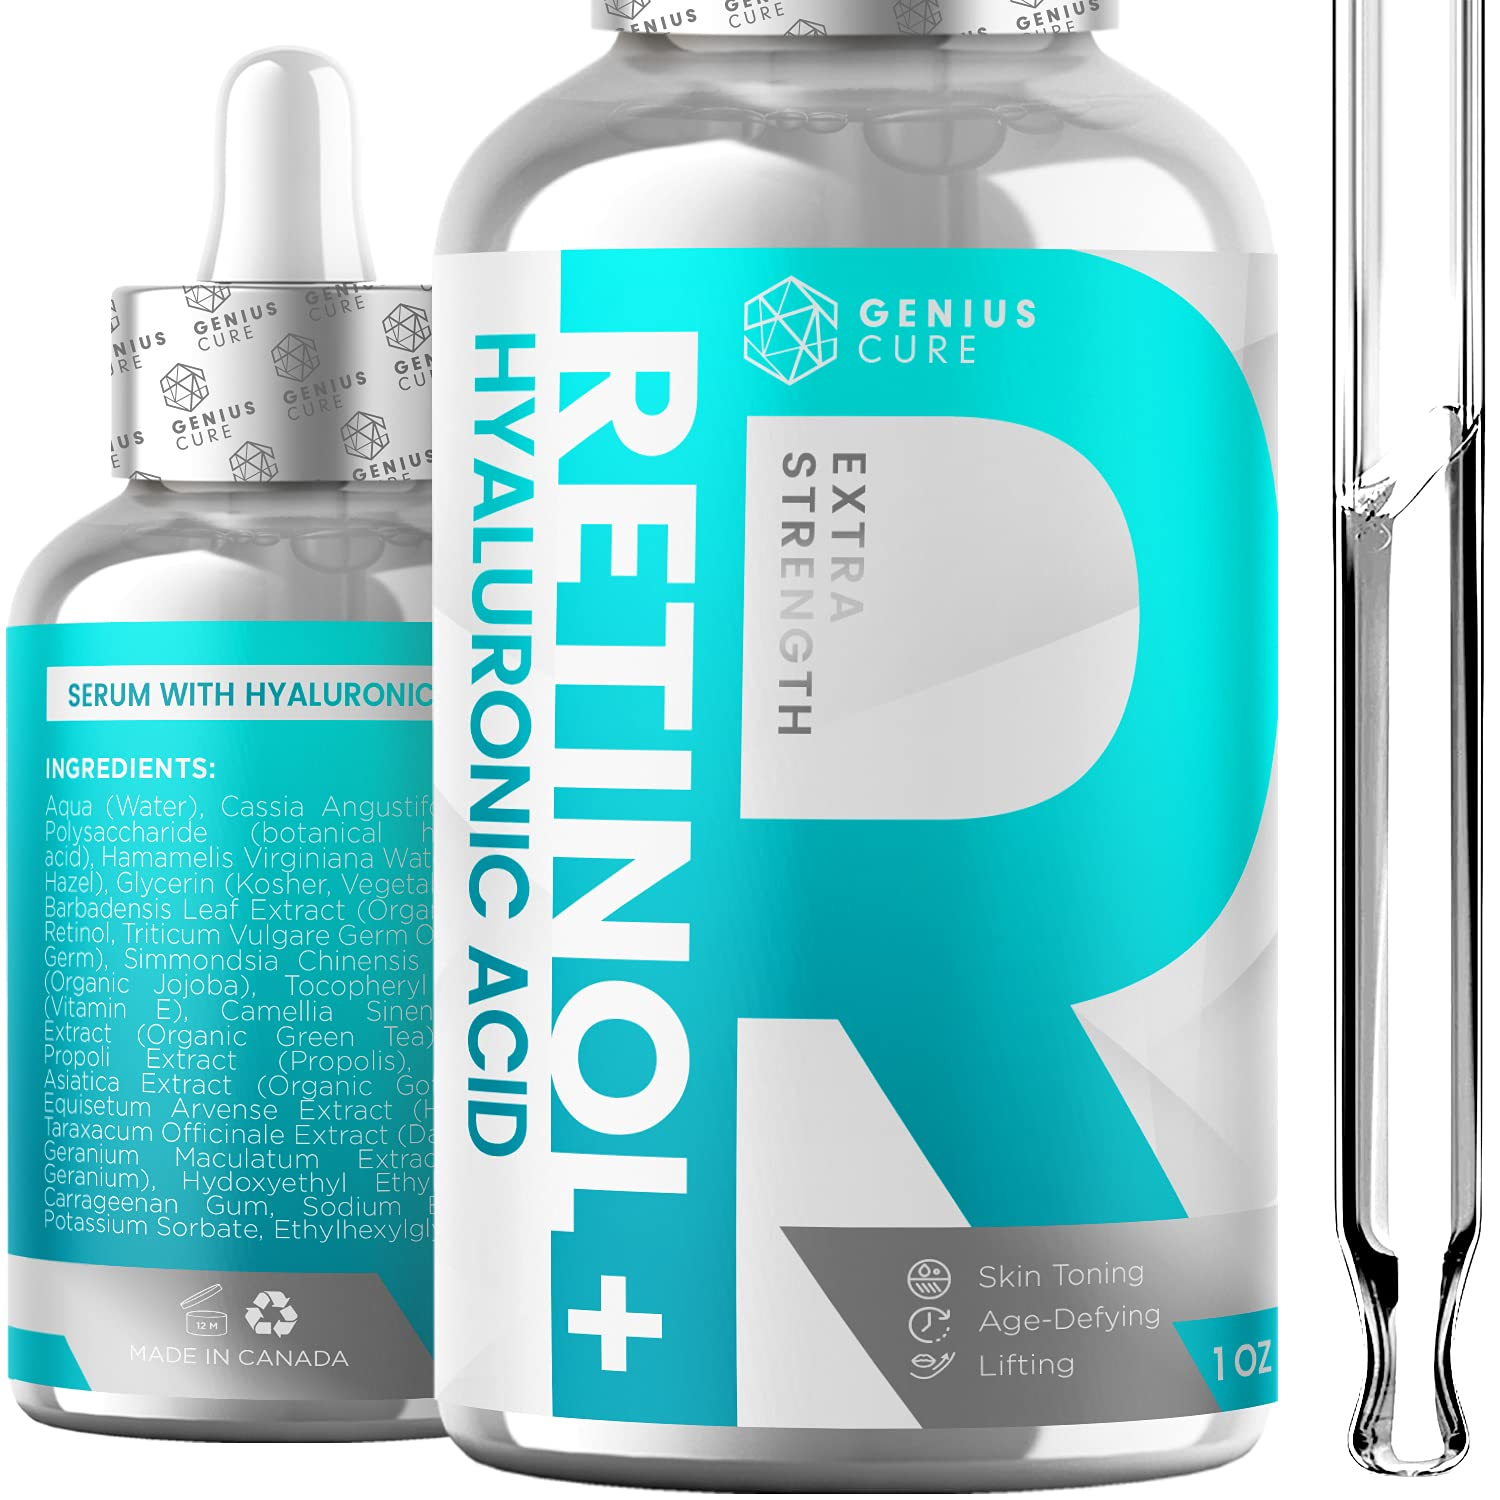 Retinol & Hyaluronic Acid Serum Anti Aging & Anti Wrinkle Serum, Boost Collagen Production and Effectively Reduce Wrinkles For Face & Eyes 1fl oz: Beauty